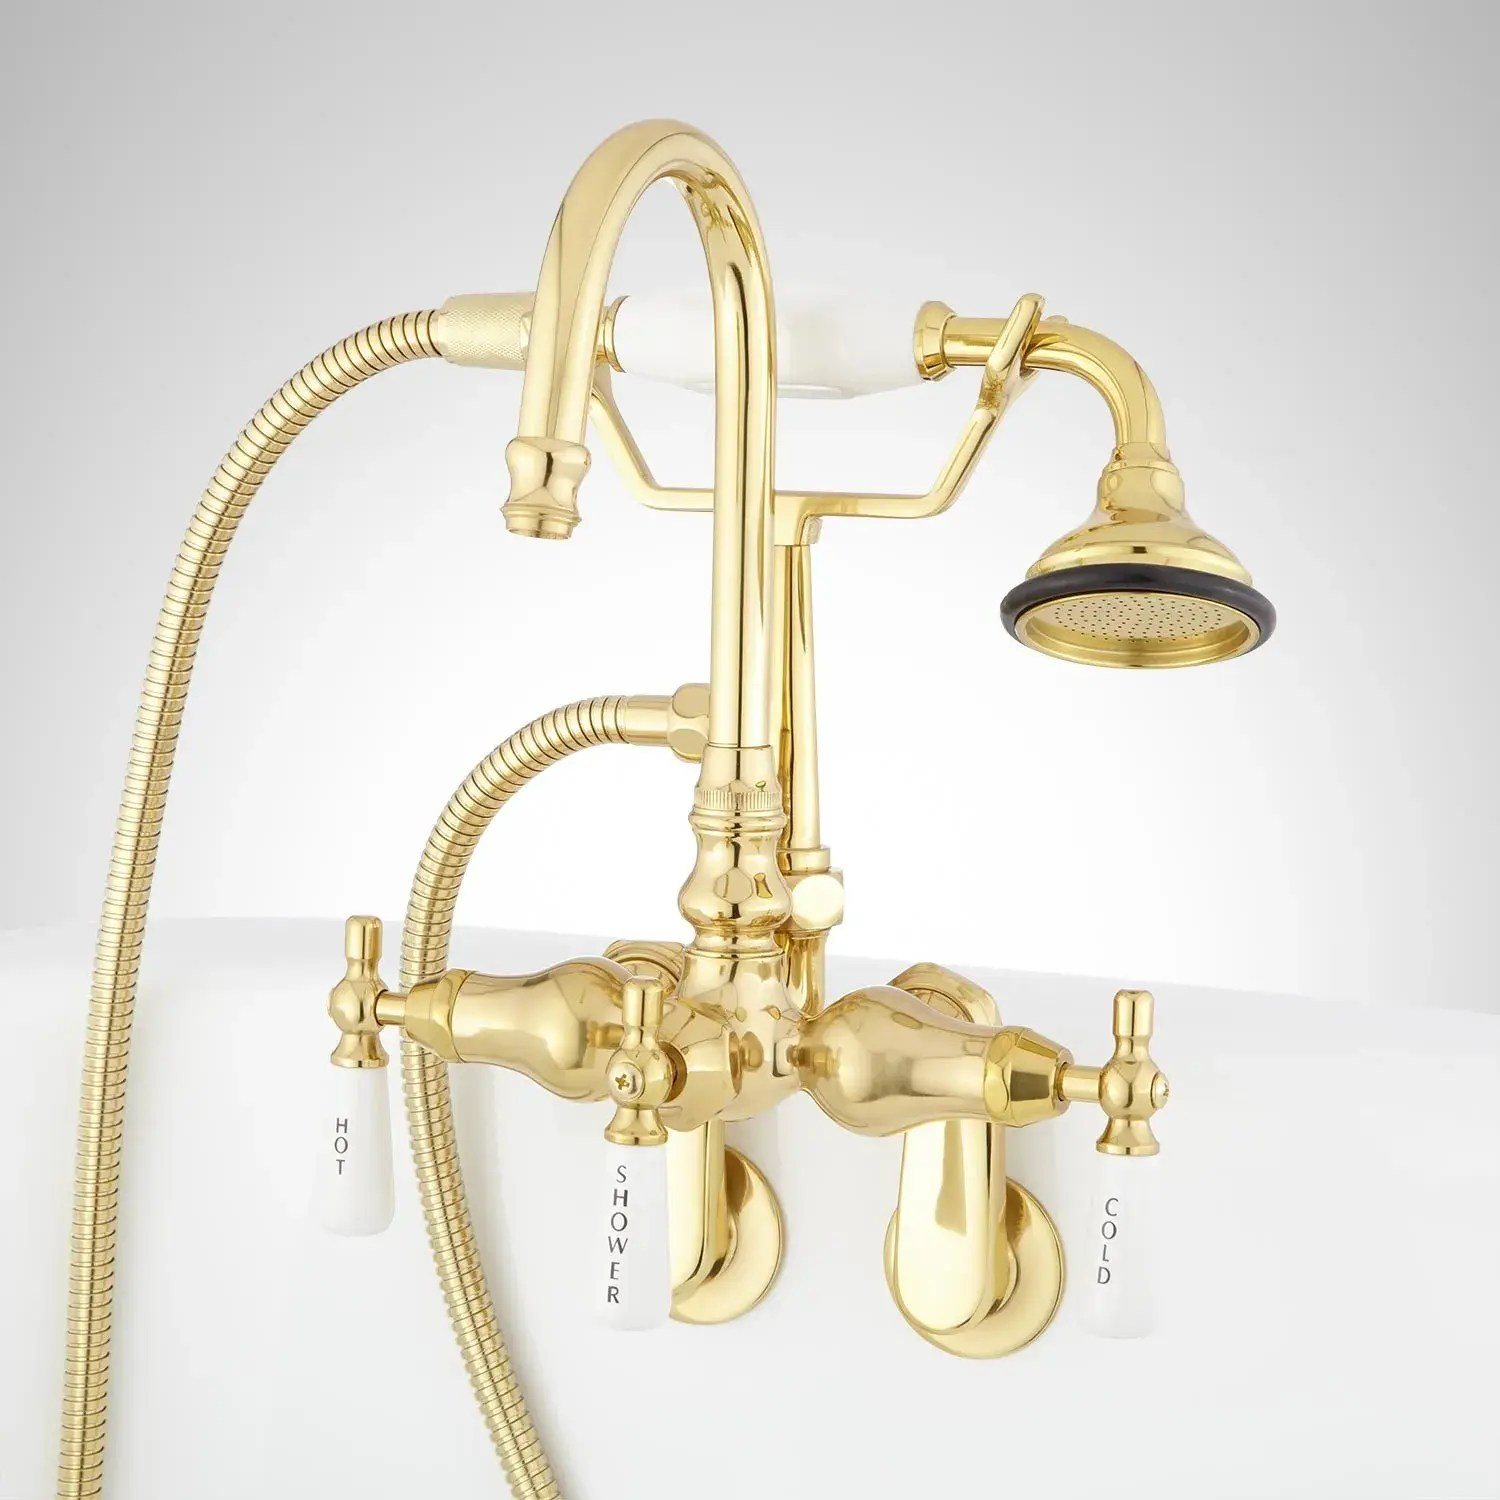 gooseneck tub wall mount faucet and hand shower